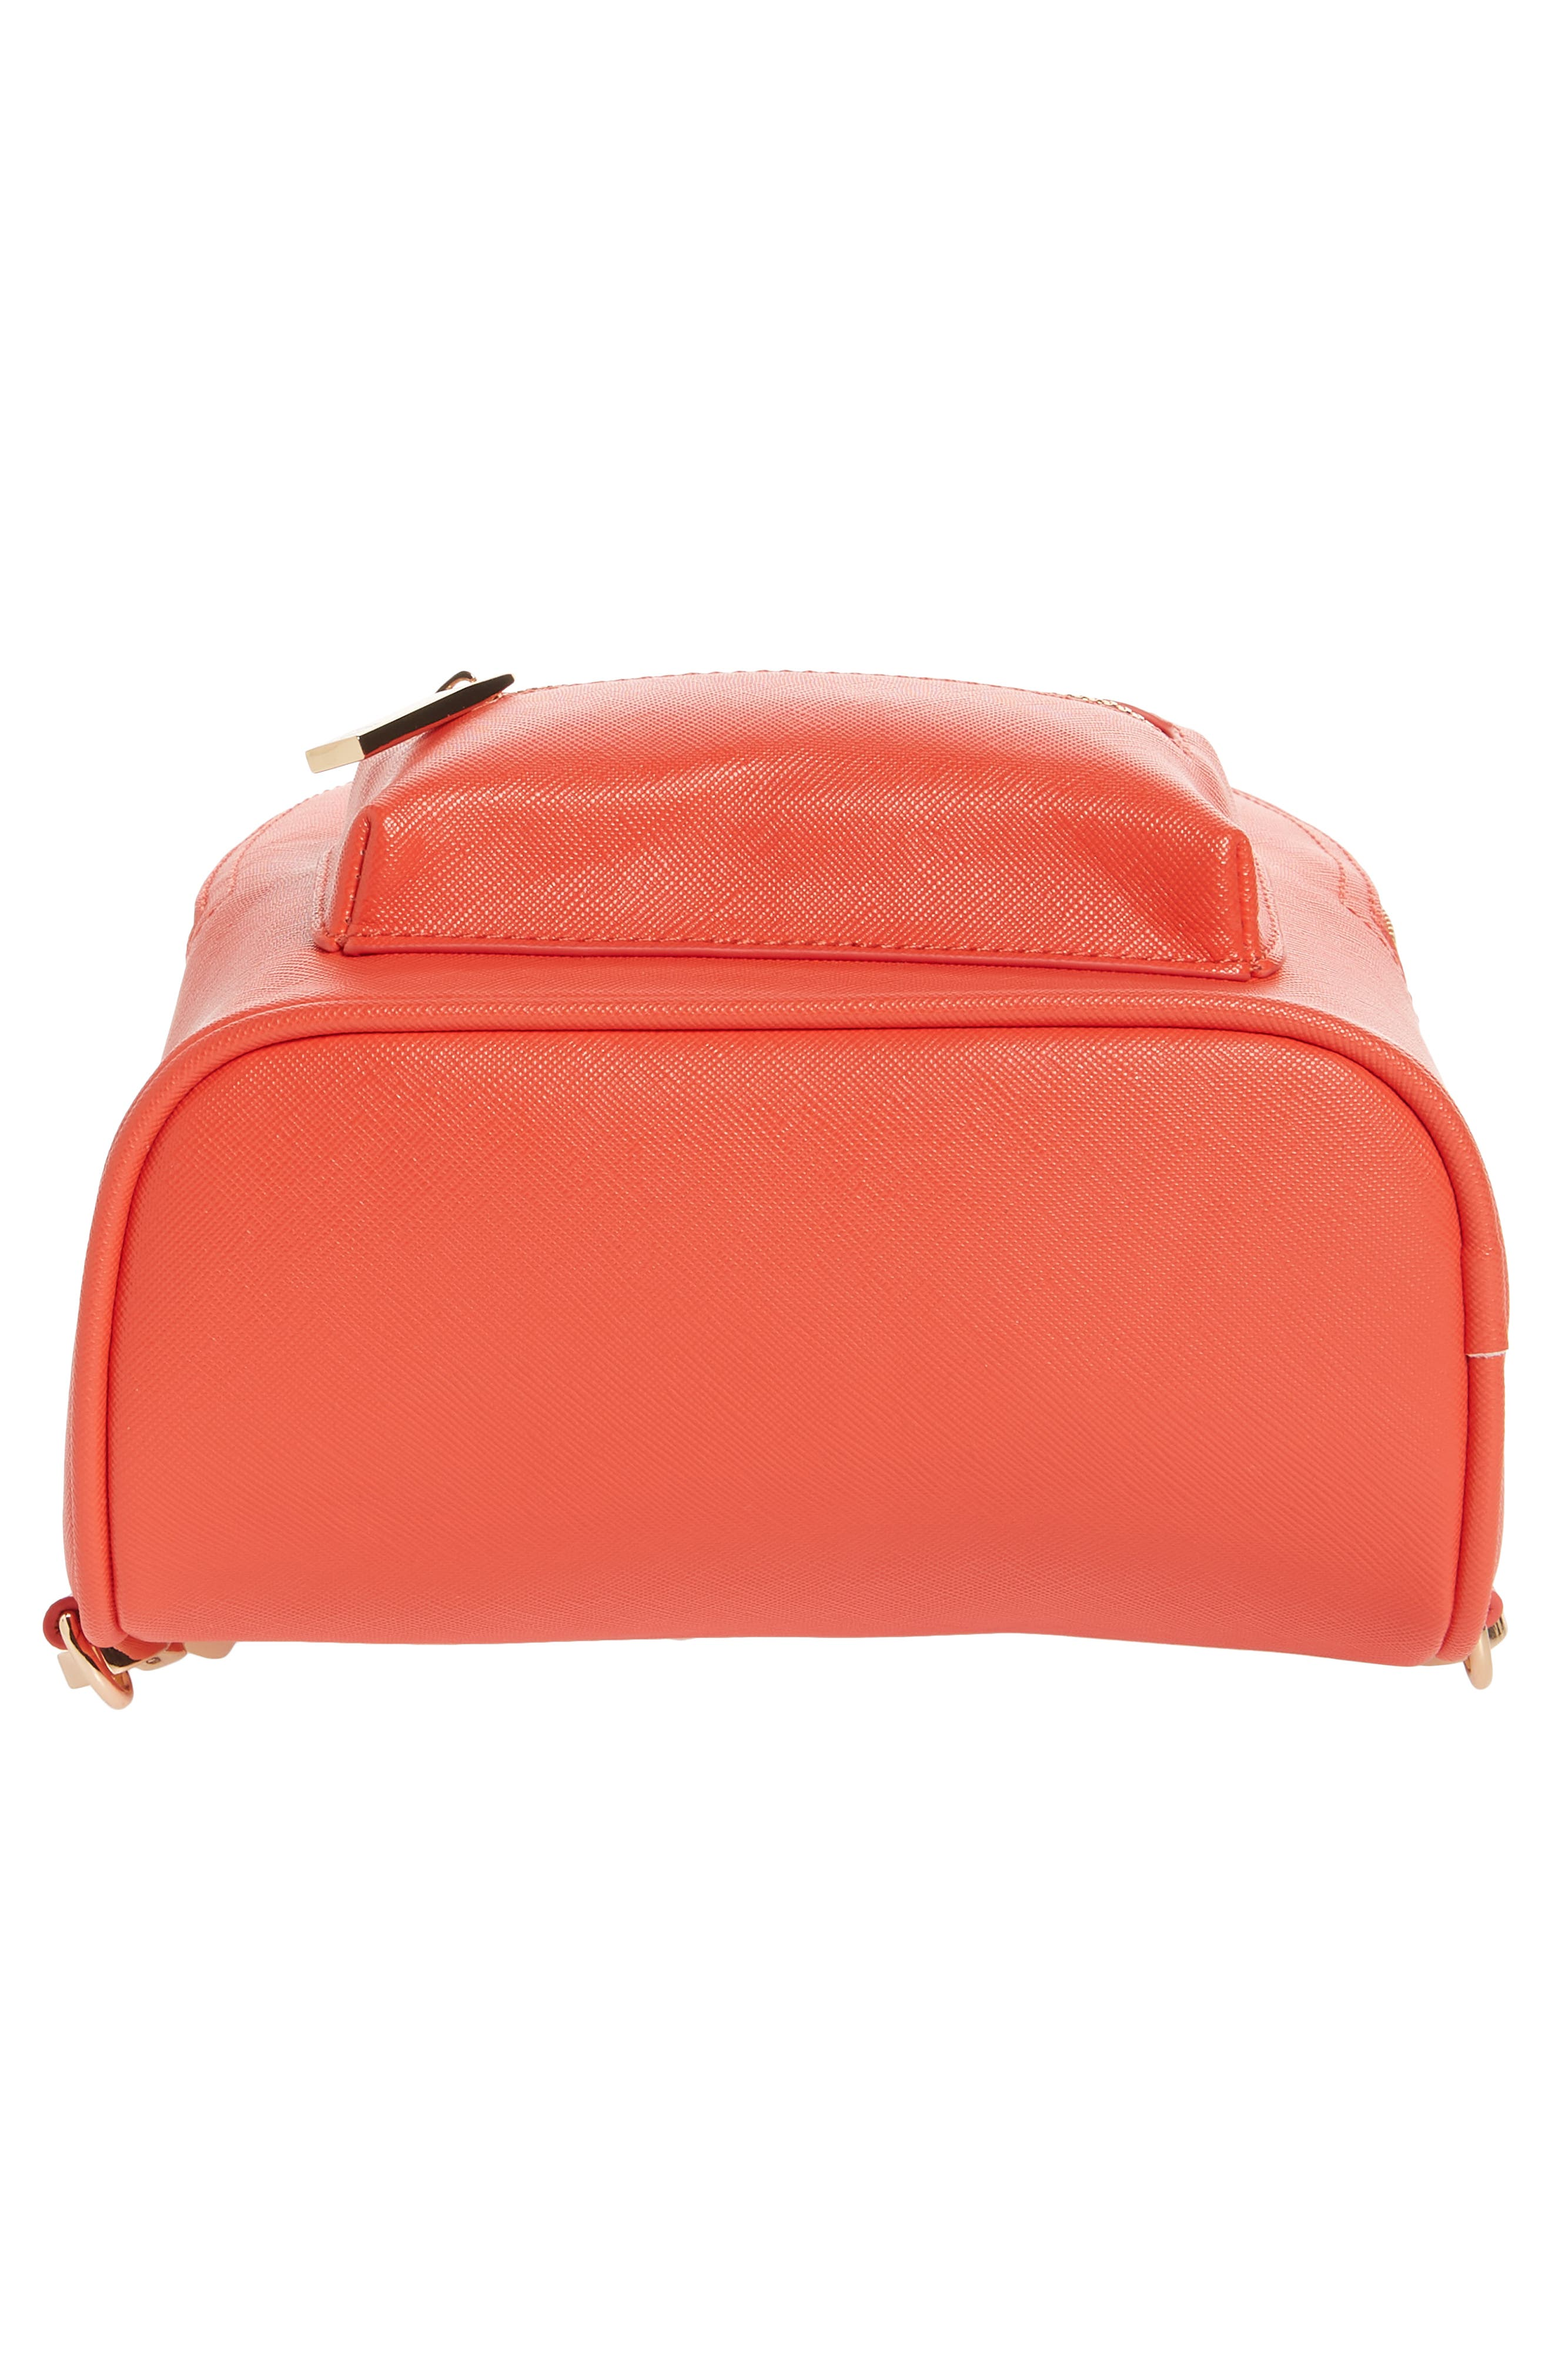 Annabelle Mini Faux Leather Backpack,                             Alternate thumbnail 6, color,                             Poppy